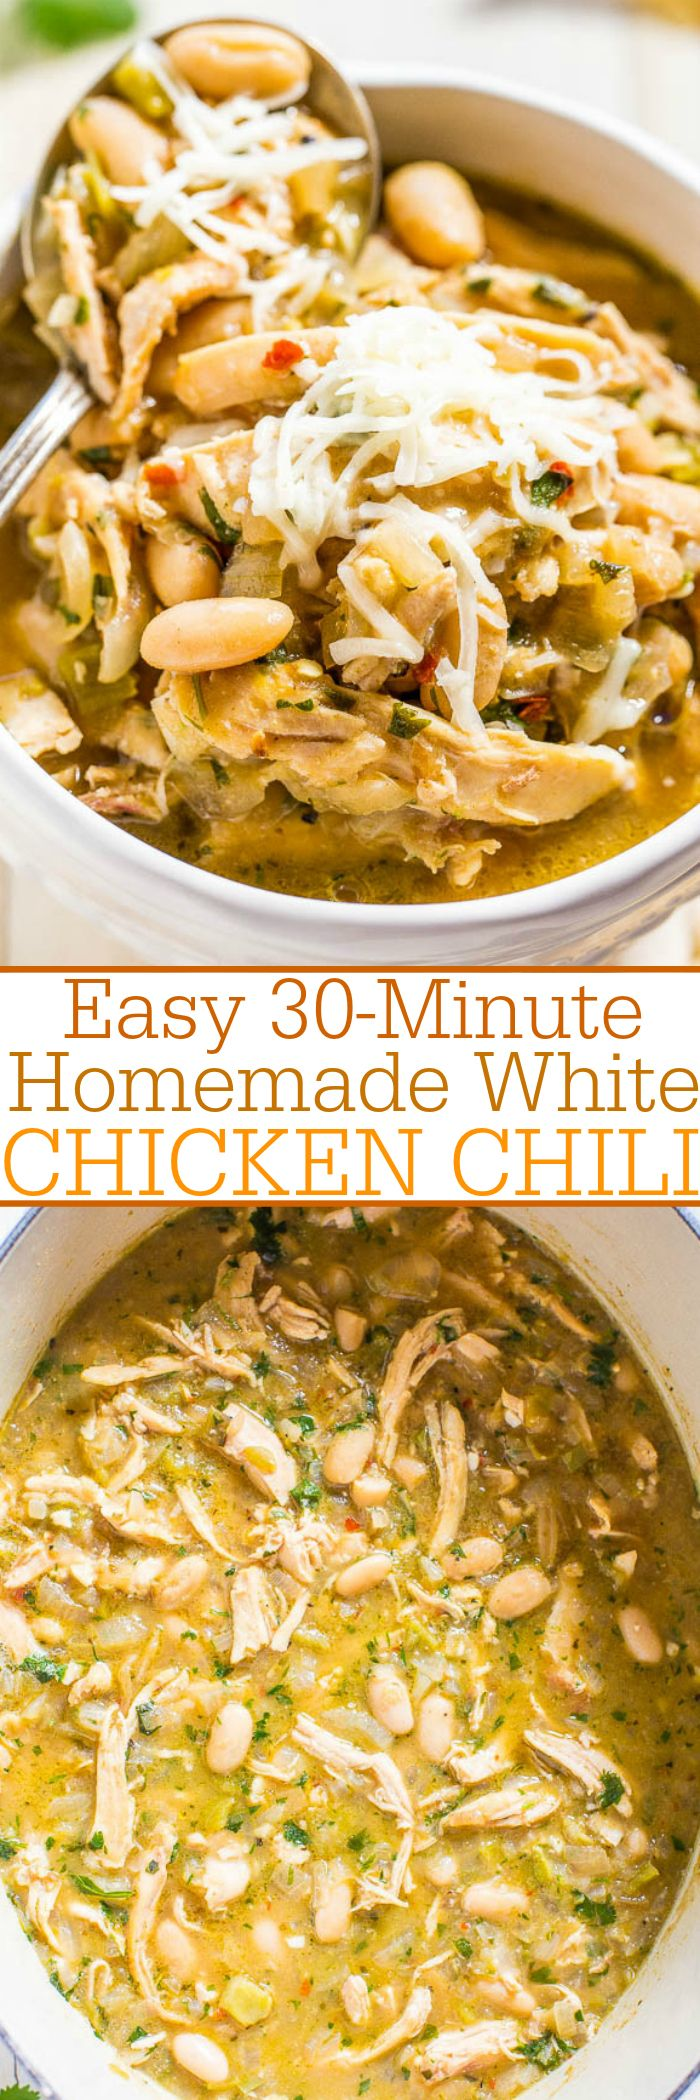 Easy 30-Minute Homemade White Chicken Chili — Hearty, healthy, loaded with tender chicken, and packed with bold flavor!! Fast and easy comfort food that everyone loves!! It'll be on rotation all winter!!